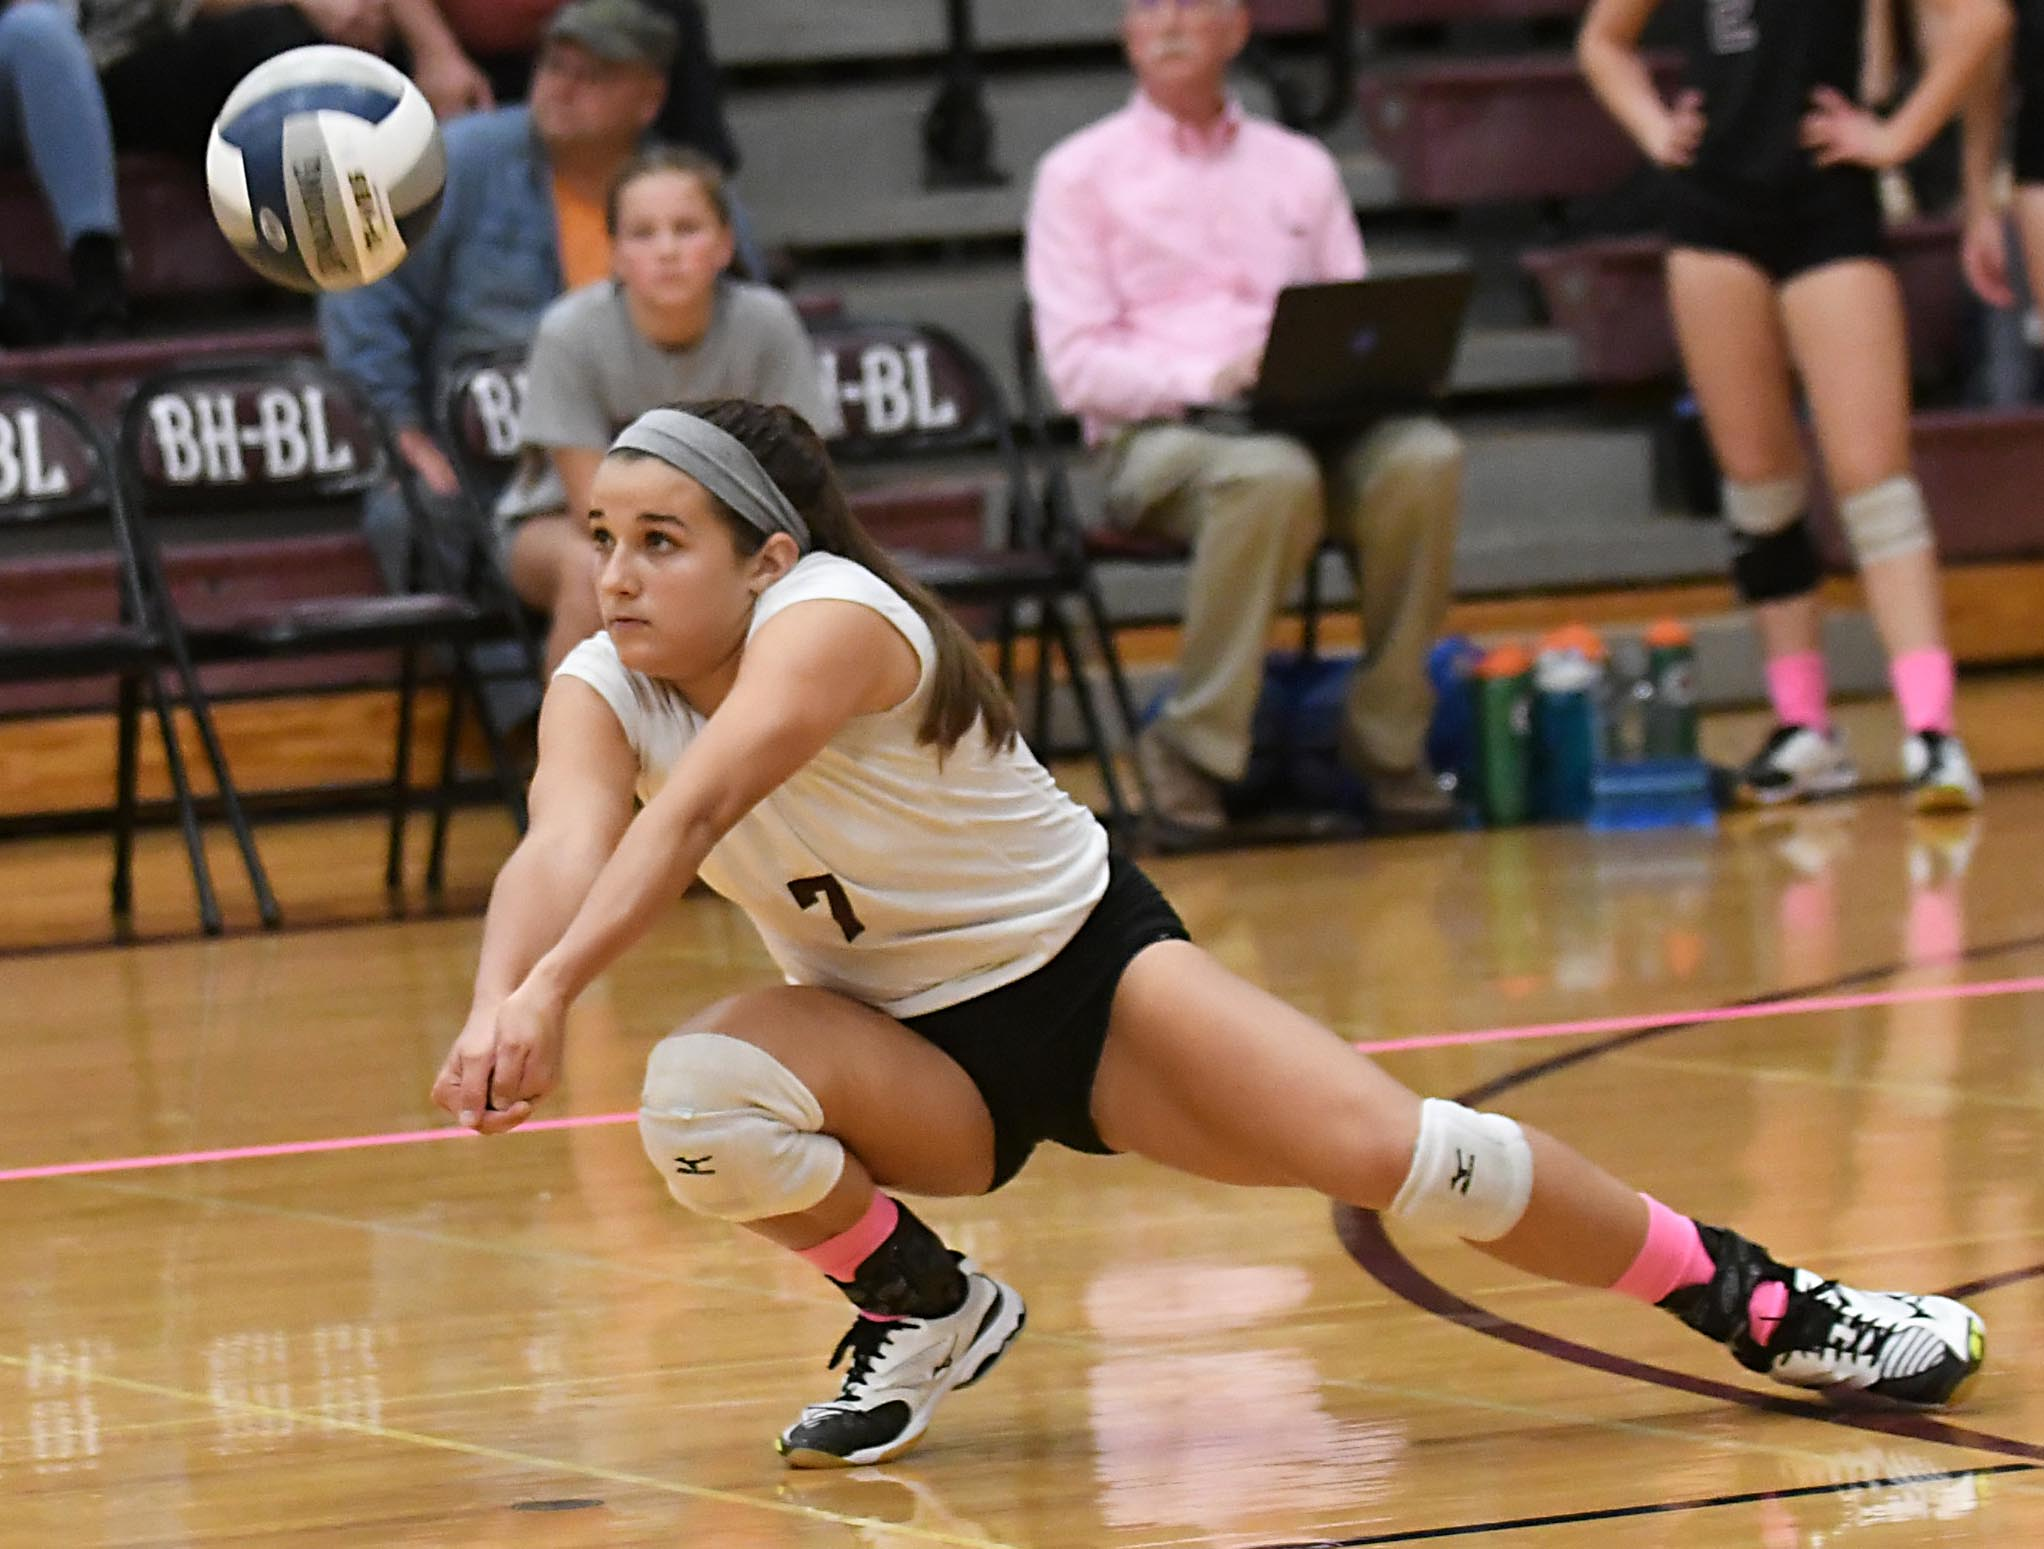 Shenendehowa tops Burnt Hills in girls' volleyball - Times ...